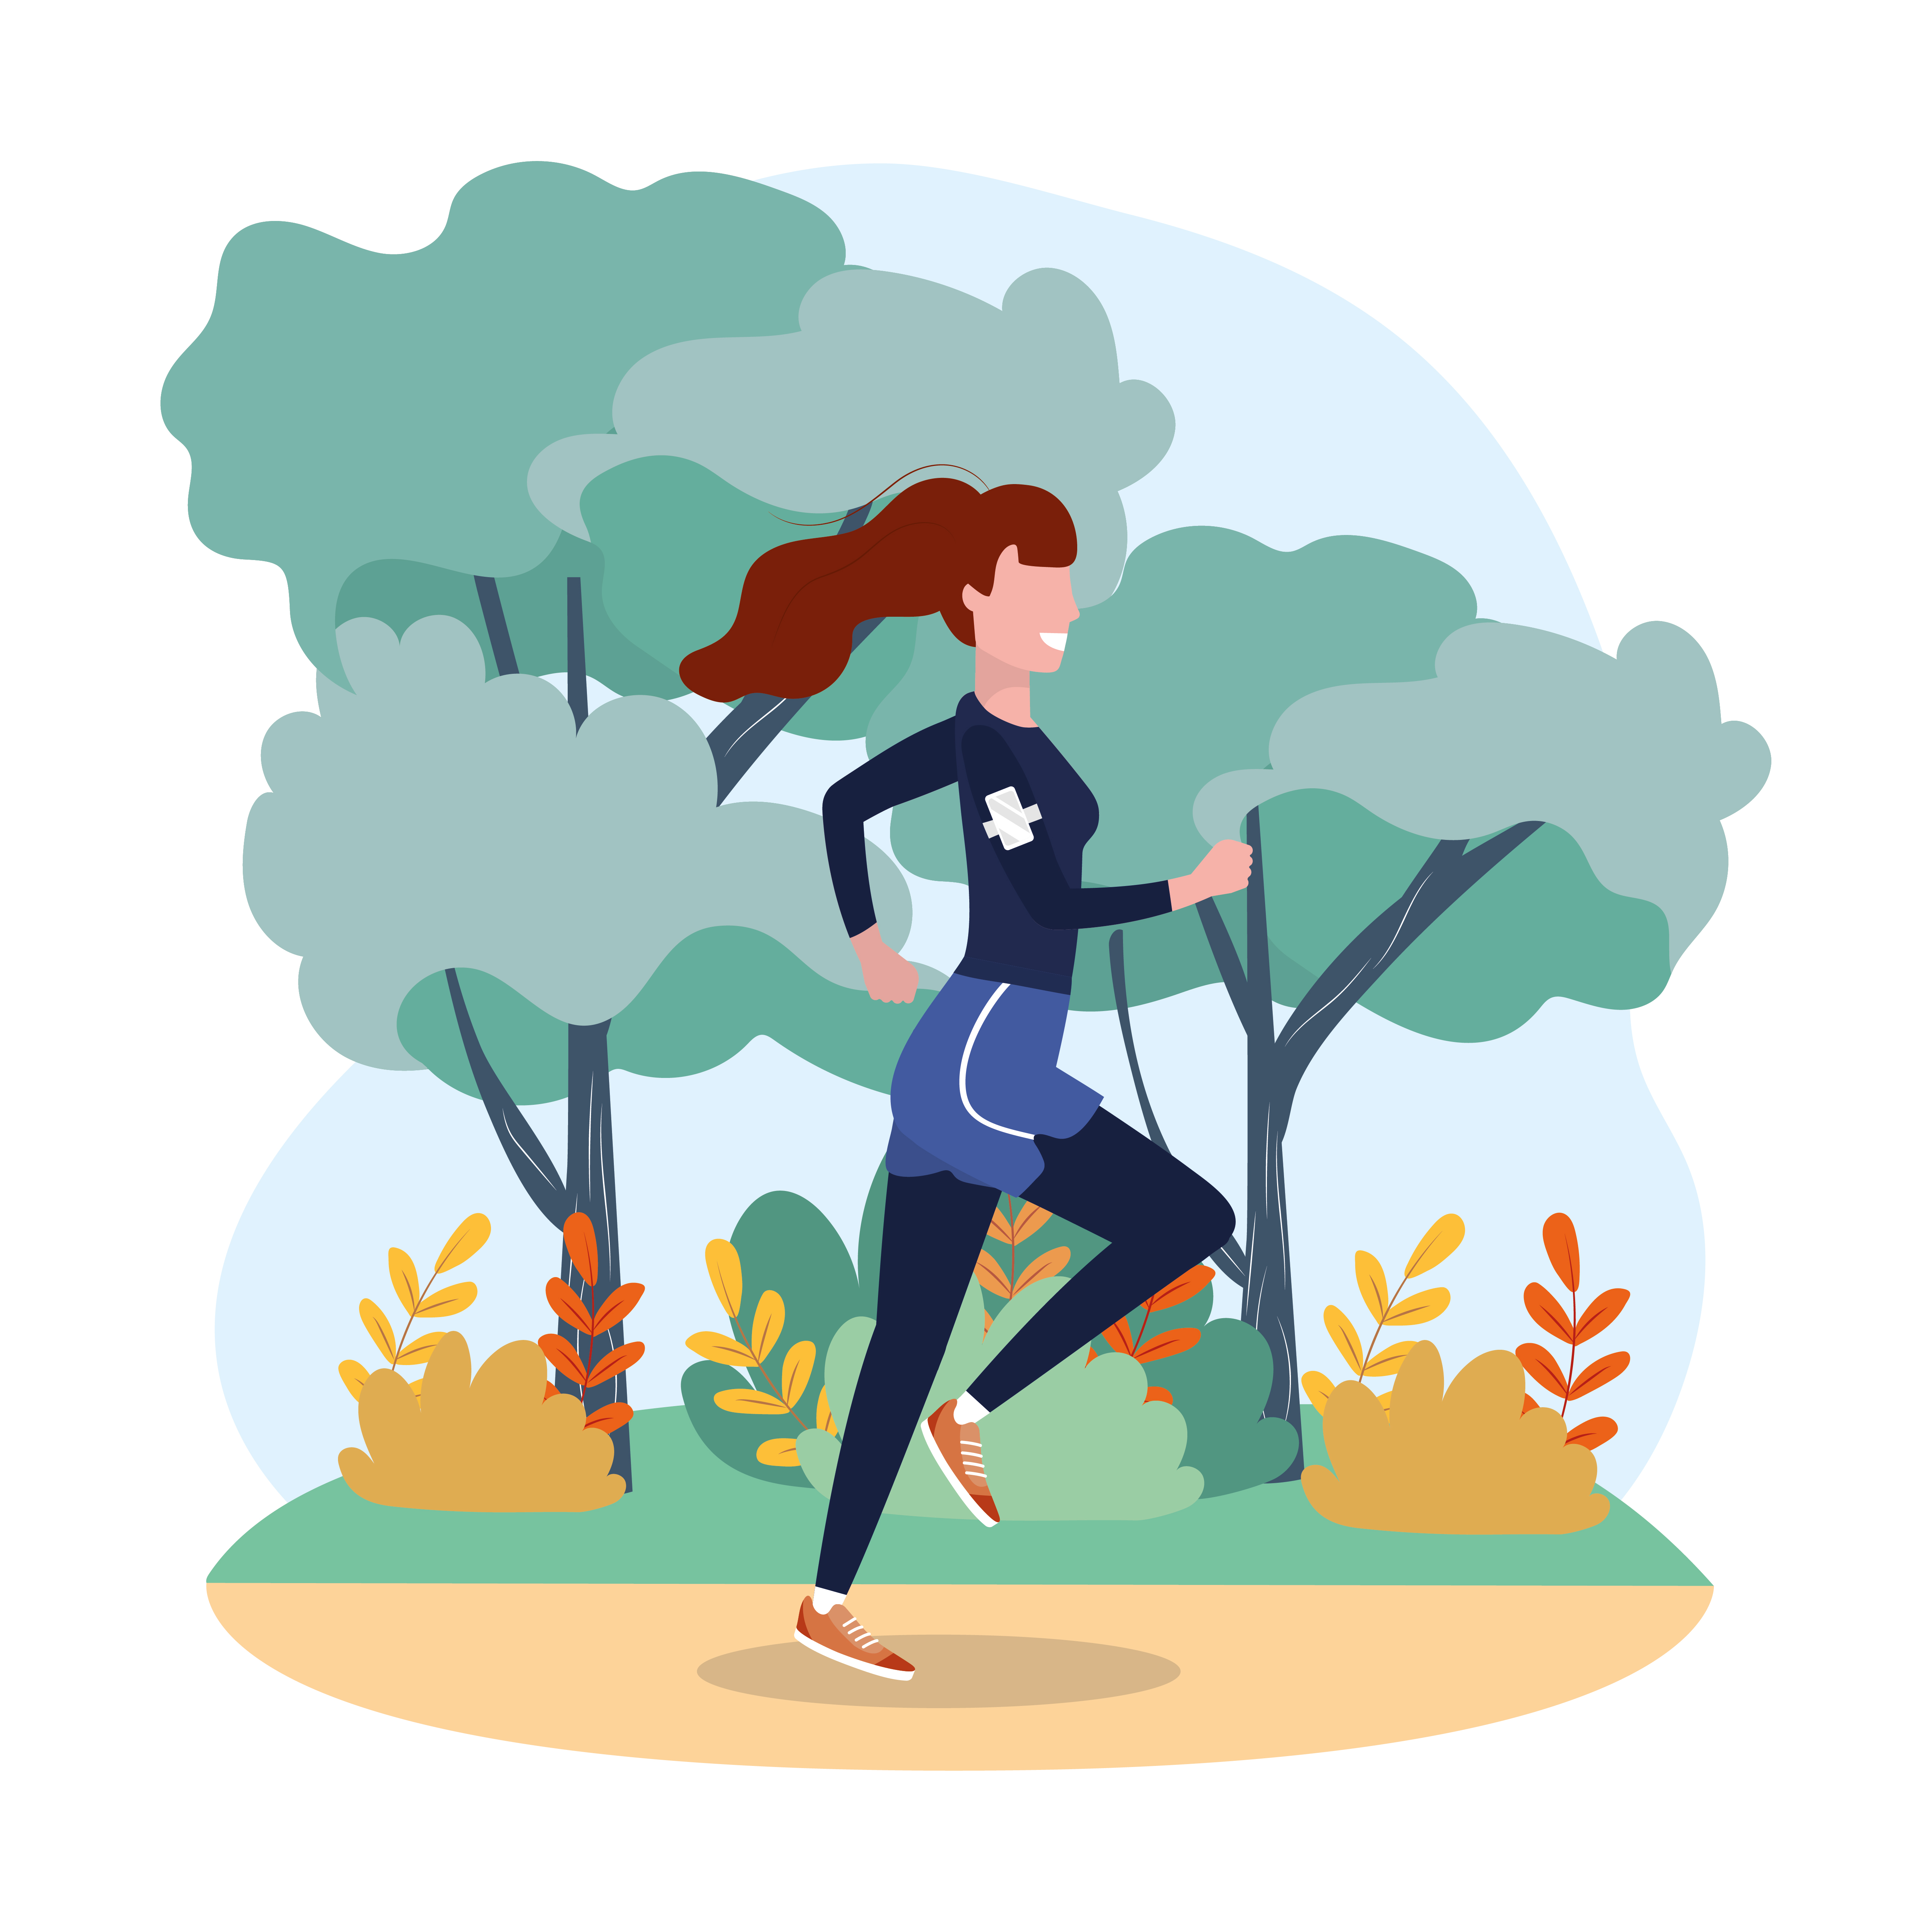 Woman Practice Running Exercise In The Lanscape Download Free Vectors Clipart Graphics Vector Art